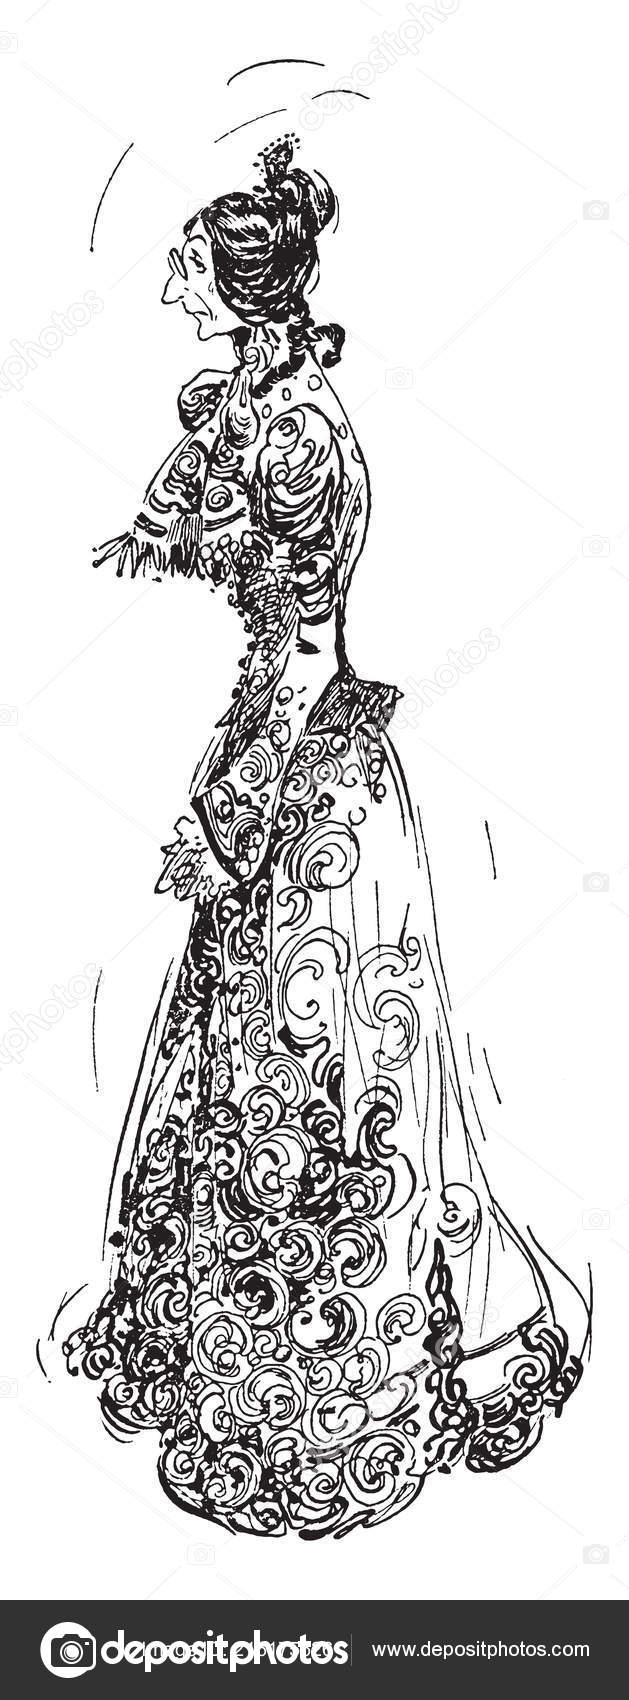 Old Woman Ornate Victorian Era Dress Vintage Line Drawing Engraving